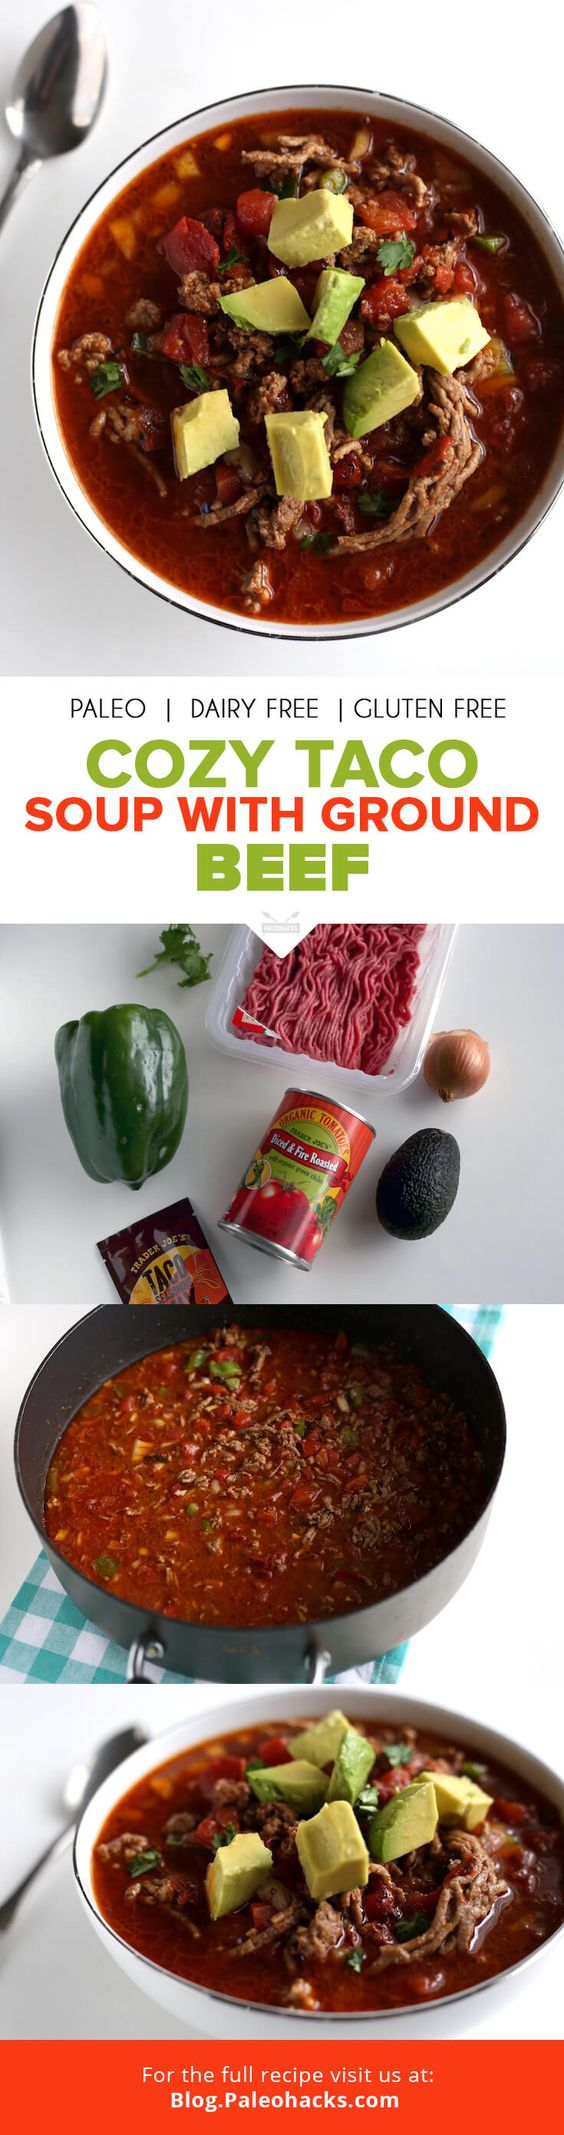 beef spicy avocado ground beef tacos ground beef recipes beef recipes ...